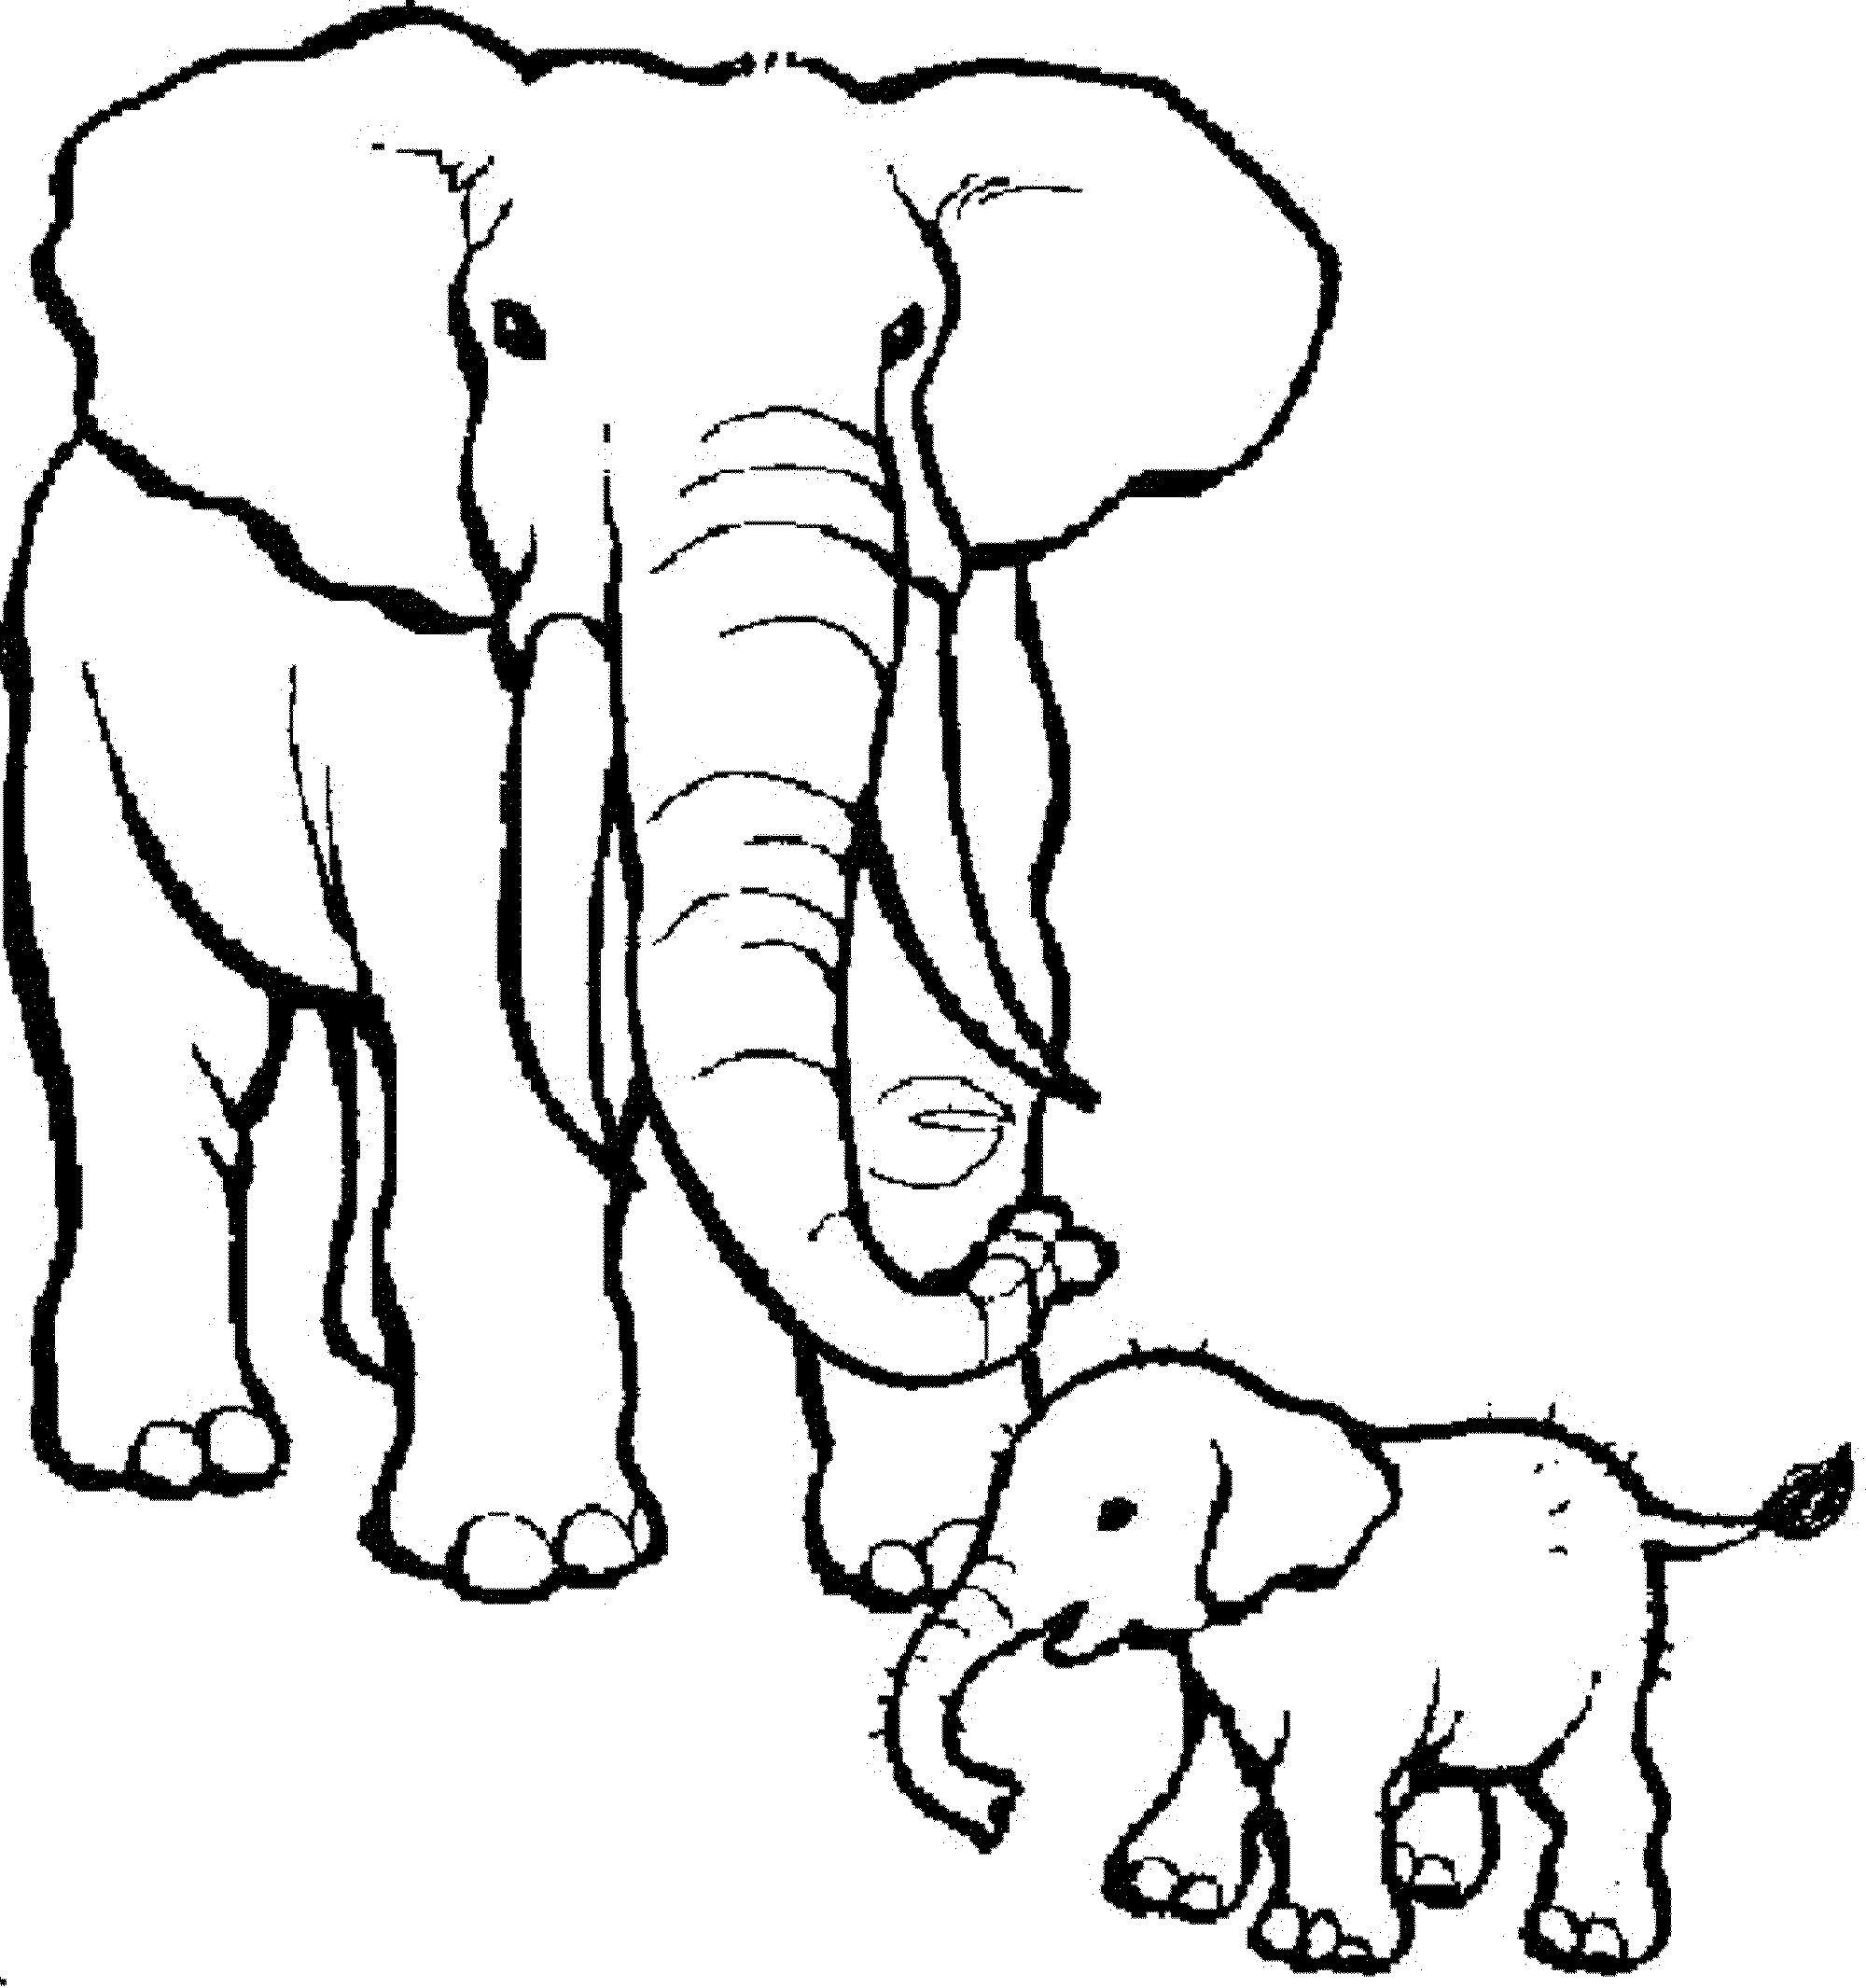 coloring pages of elephants - Kids Coloring Pages Animals